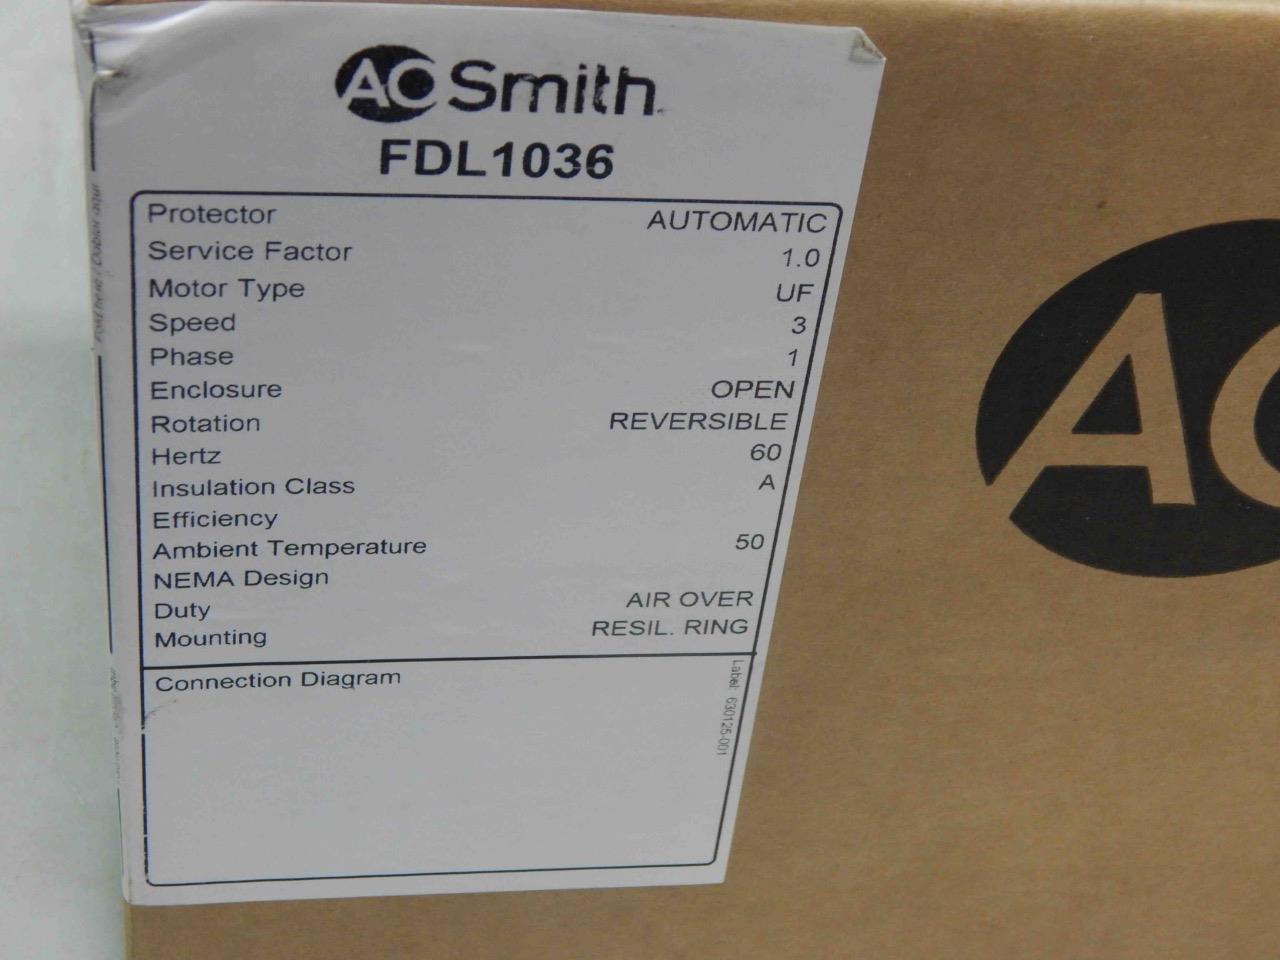 17 AO Smith Motor FDL1036 4MA66 13HP 115V RPM 10753 Spd 48Y Fr NEW 222065080584 3?resize\\\\\\\\\\\\\\\=665%2C499 ebm papst fan wiring diagram 115v gandul 45 77 79 119  at crackthecode.co